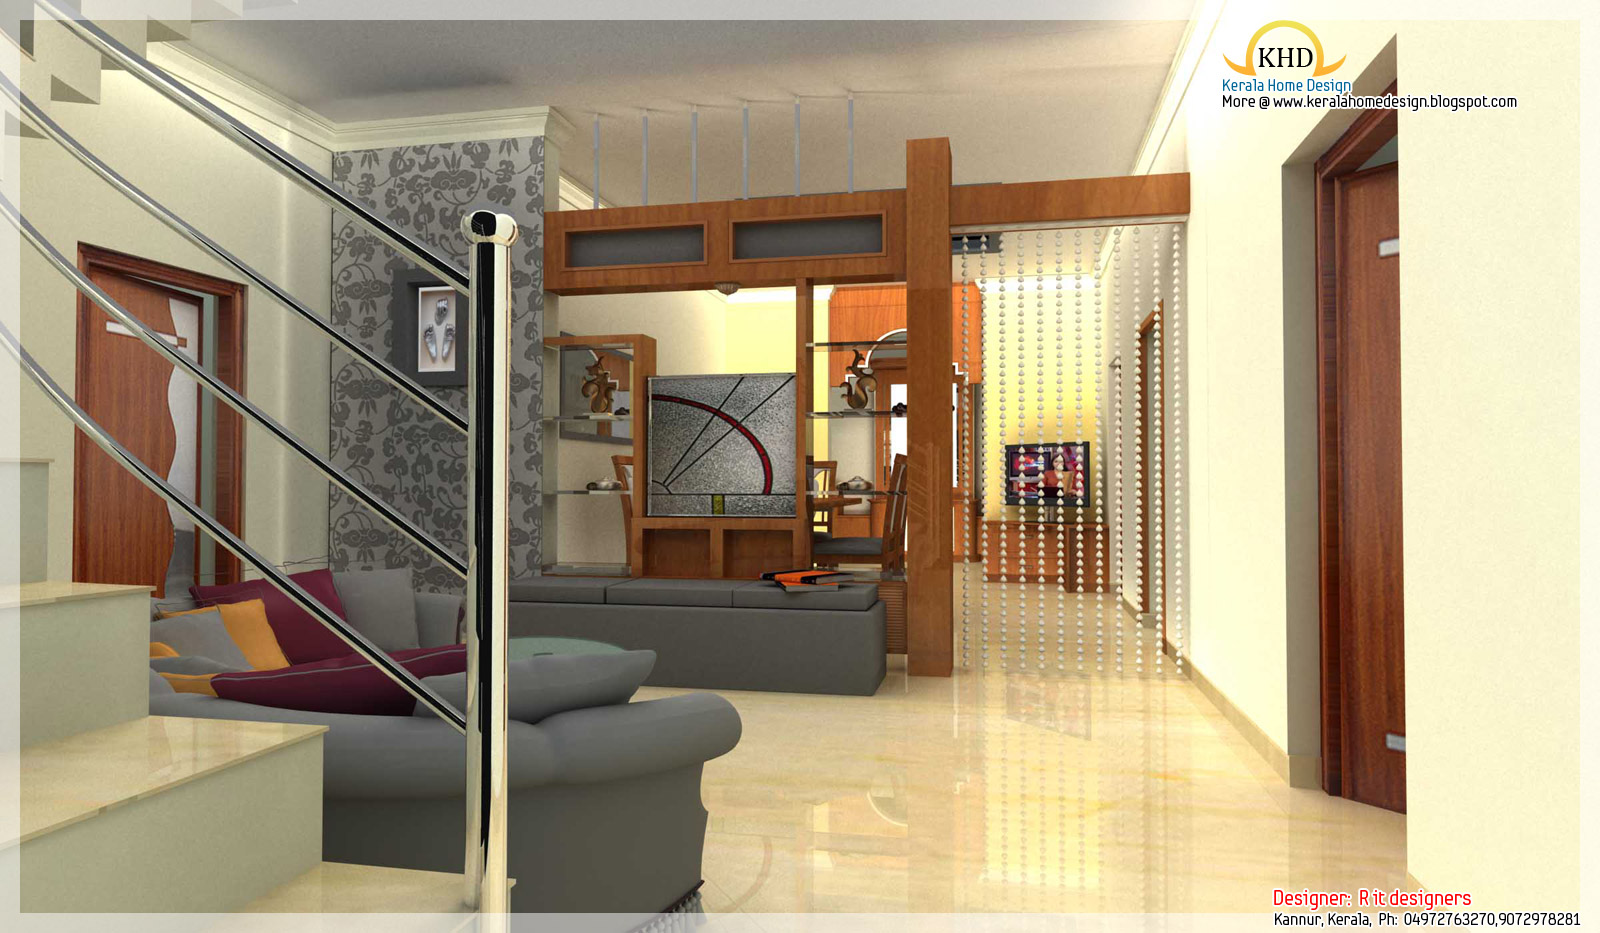 Interior design idea renderings kerala home design and for Kerala house living room interior design